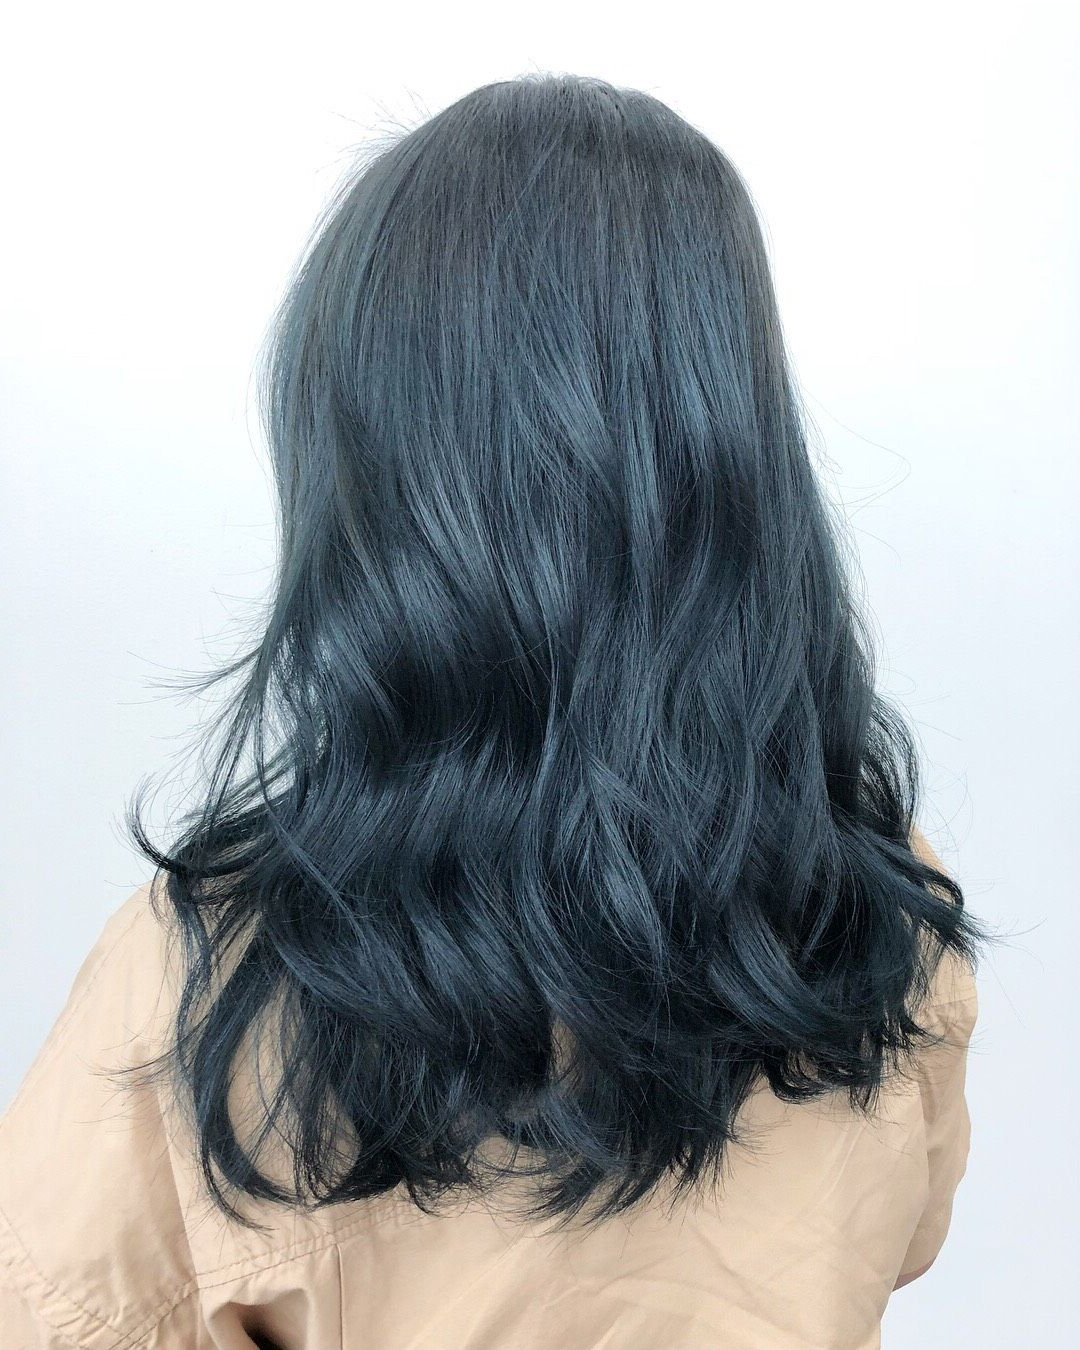 Latest Black And Denim Blue Waves Hairstyles Pertaining To Pacific Blue Inspiredthe Vast Pacific, Catch The Waves (View 10 of 20)